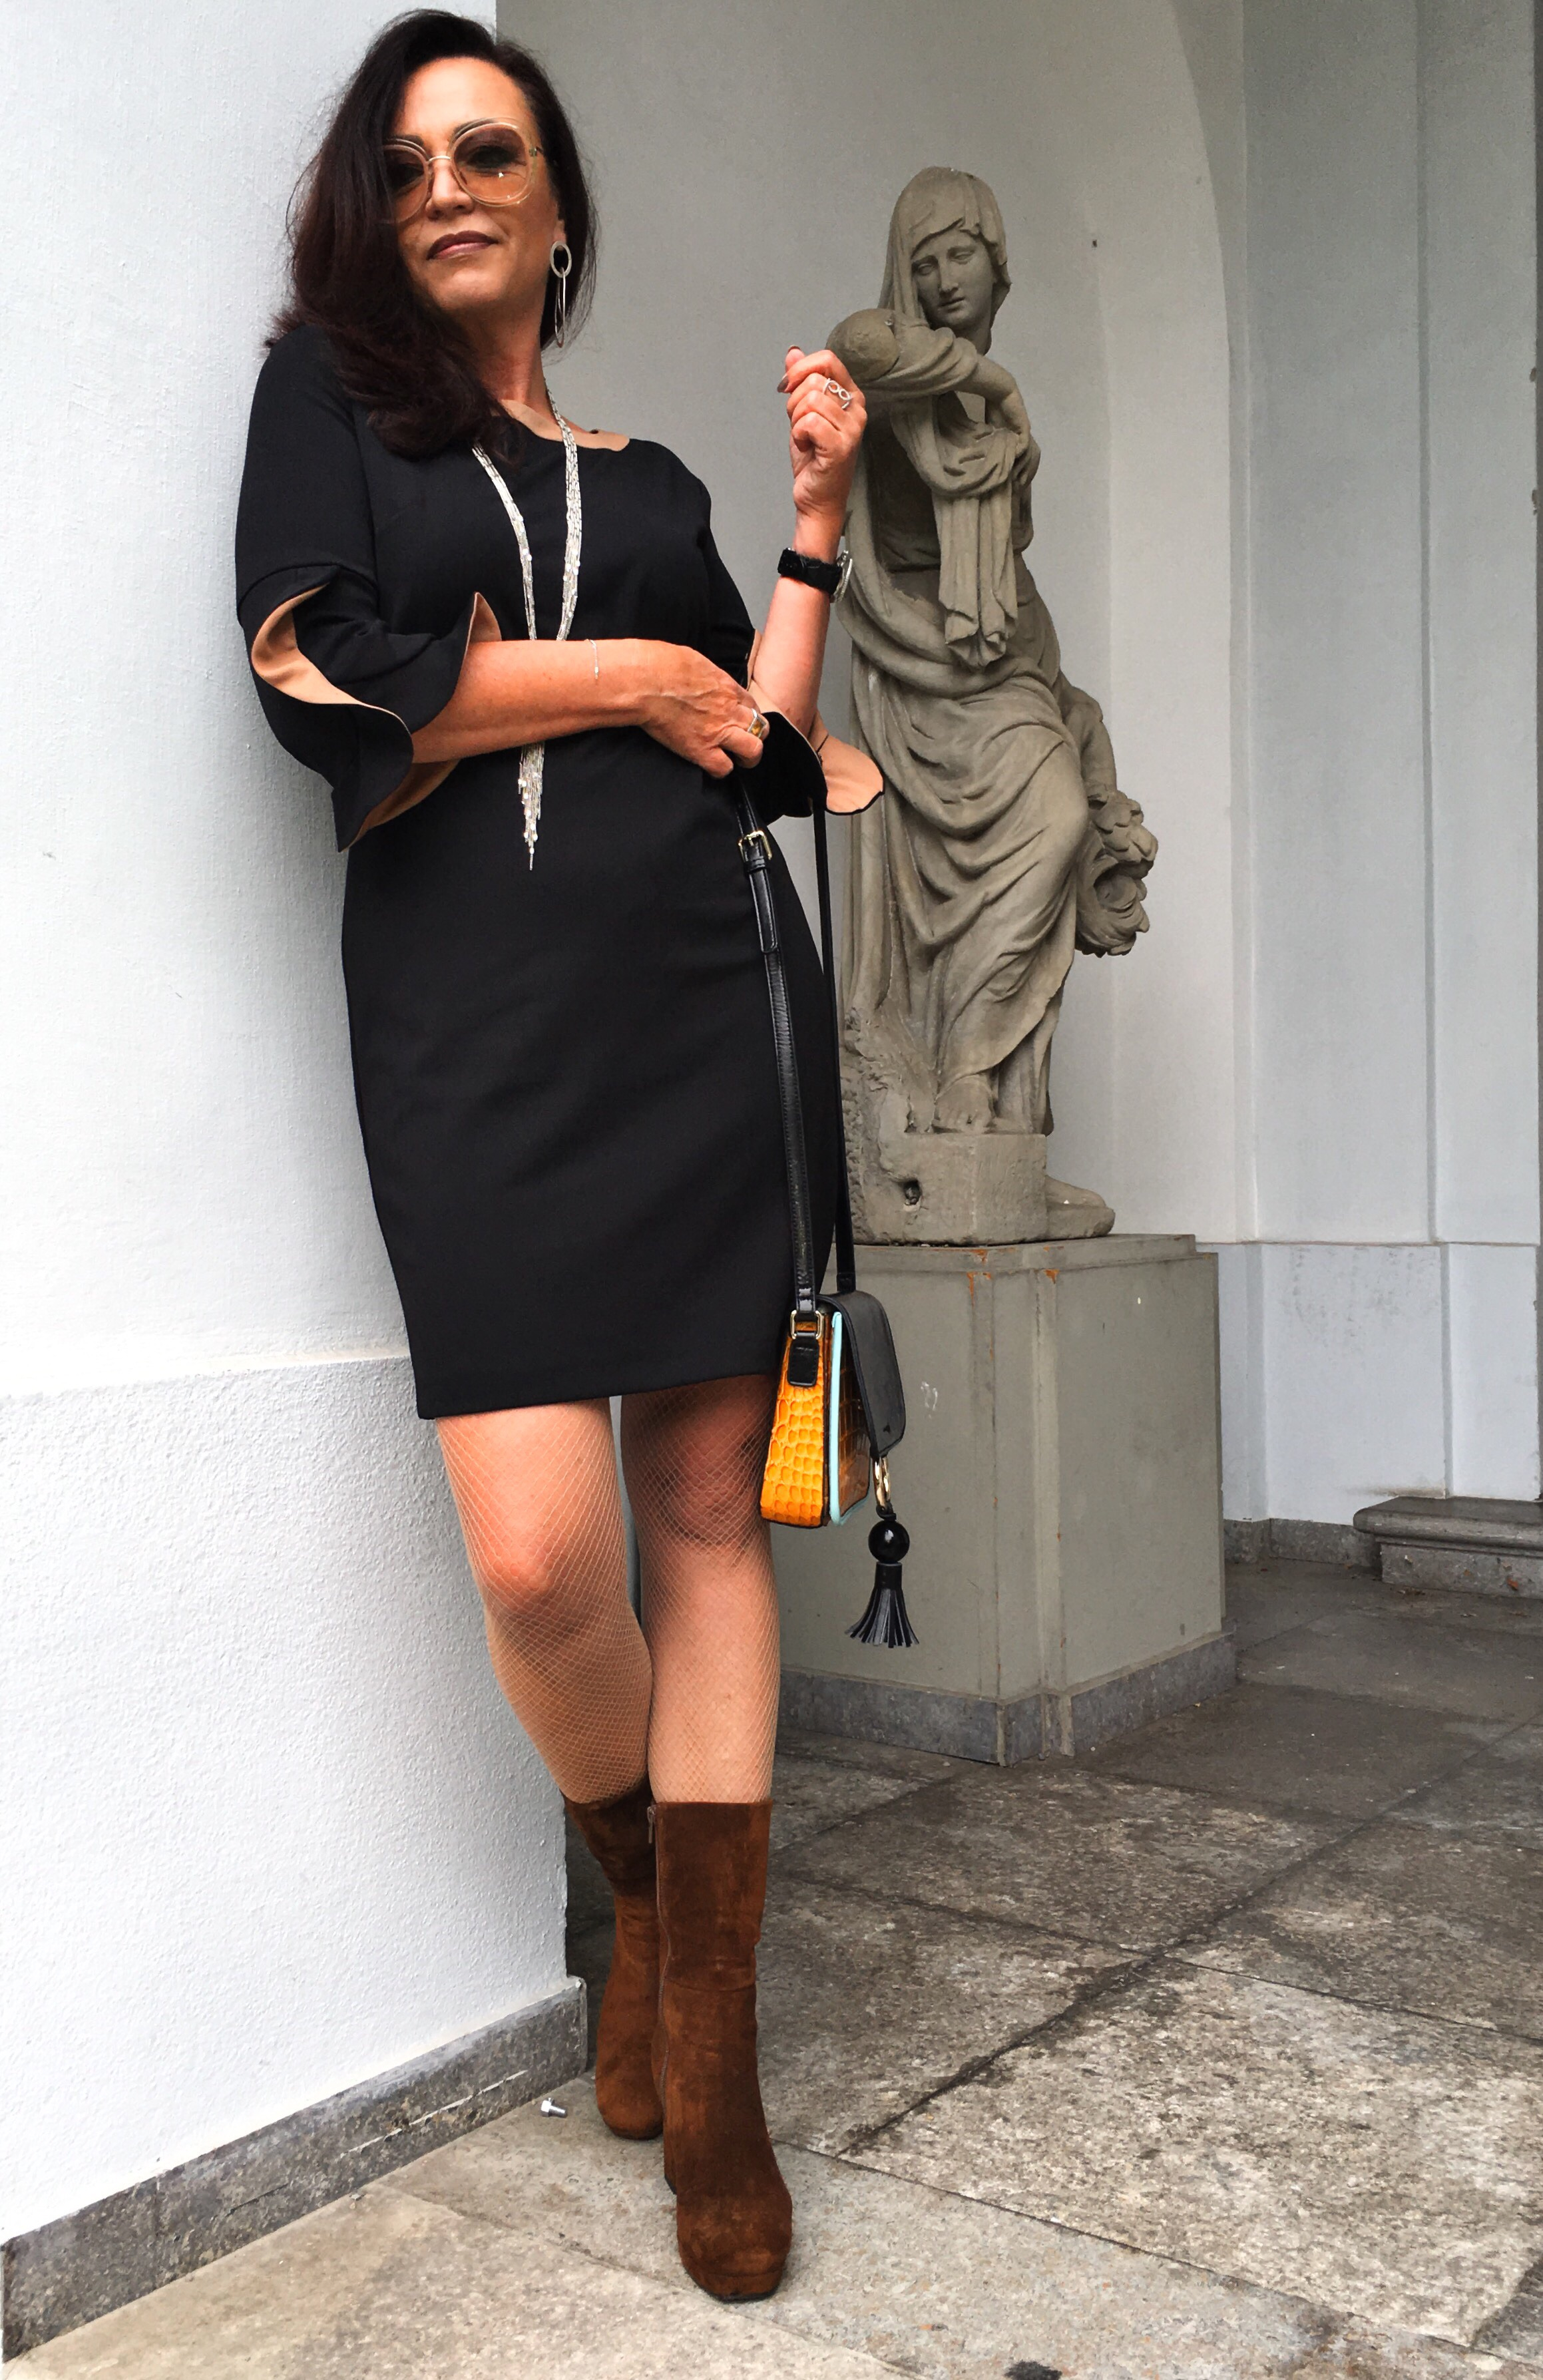 Dress: Sandro Ferrone, Shoes: Rizzolli, eyewear: Chloe. Fashionblog, style for ladies, modepost, modeblog,